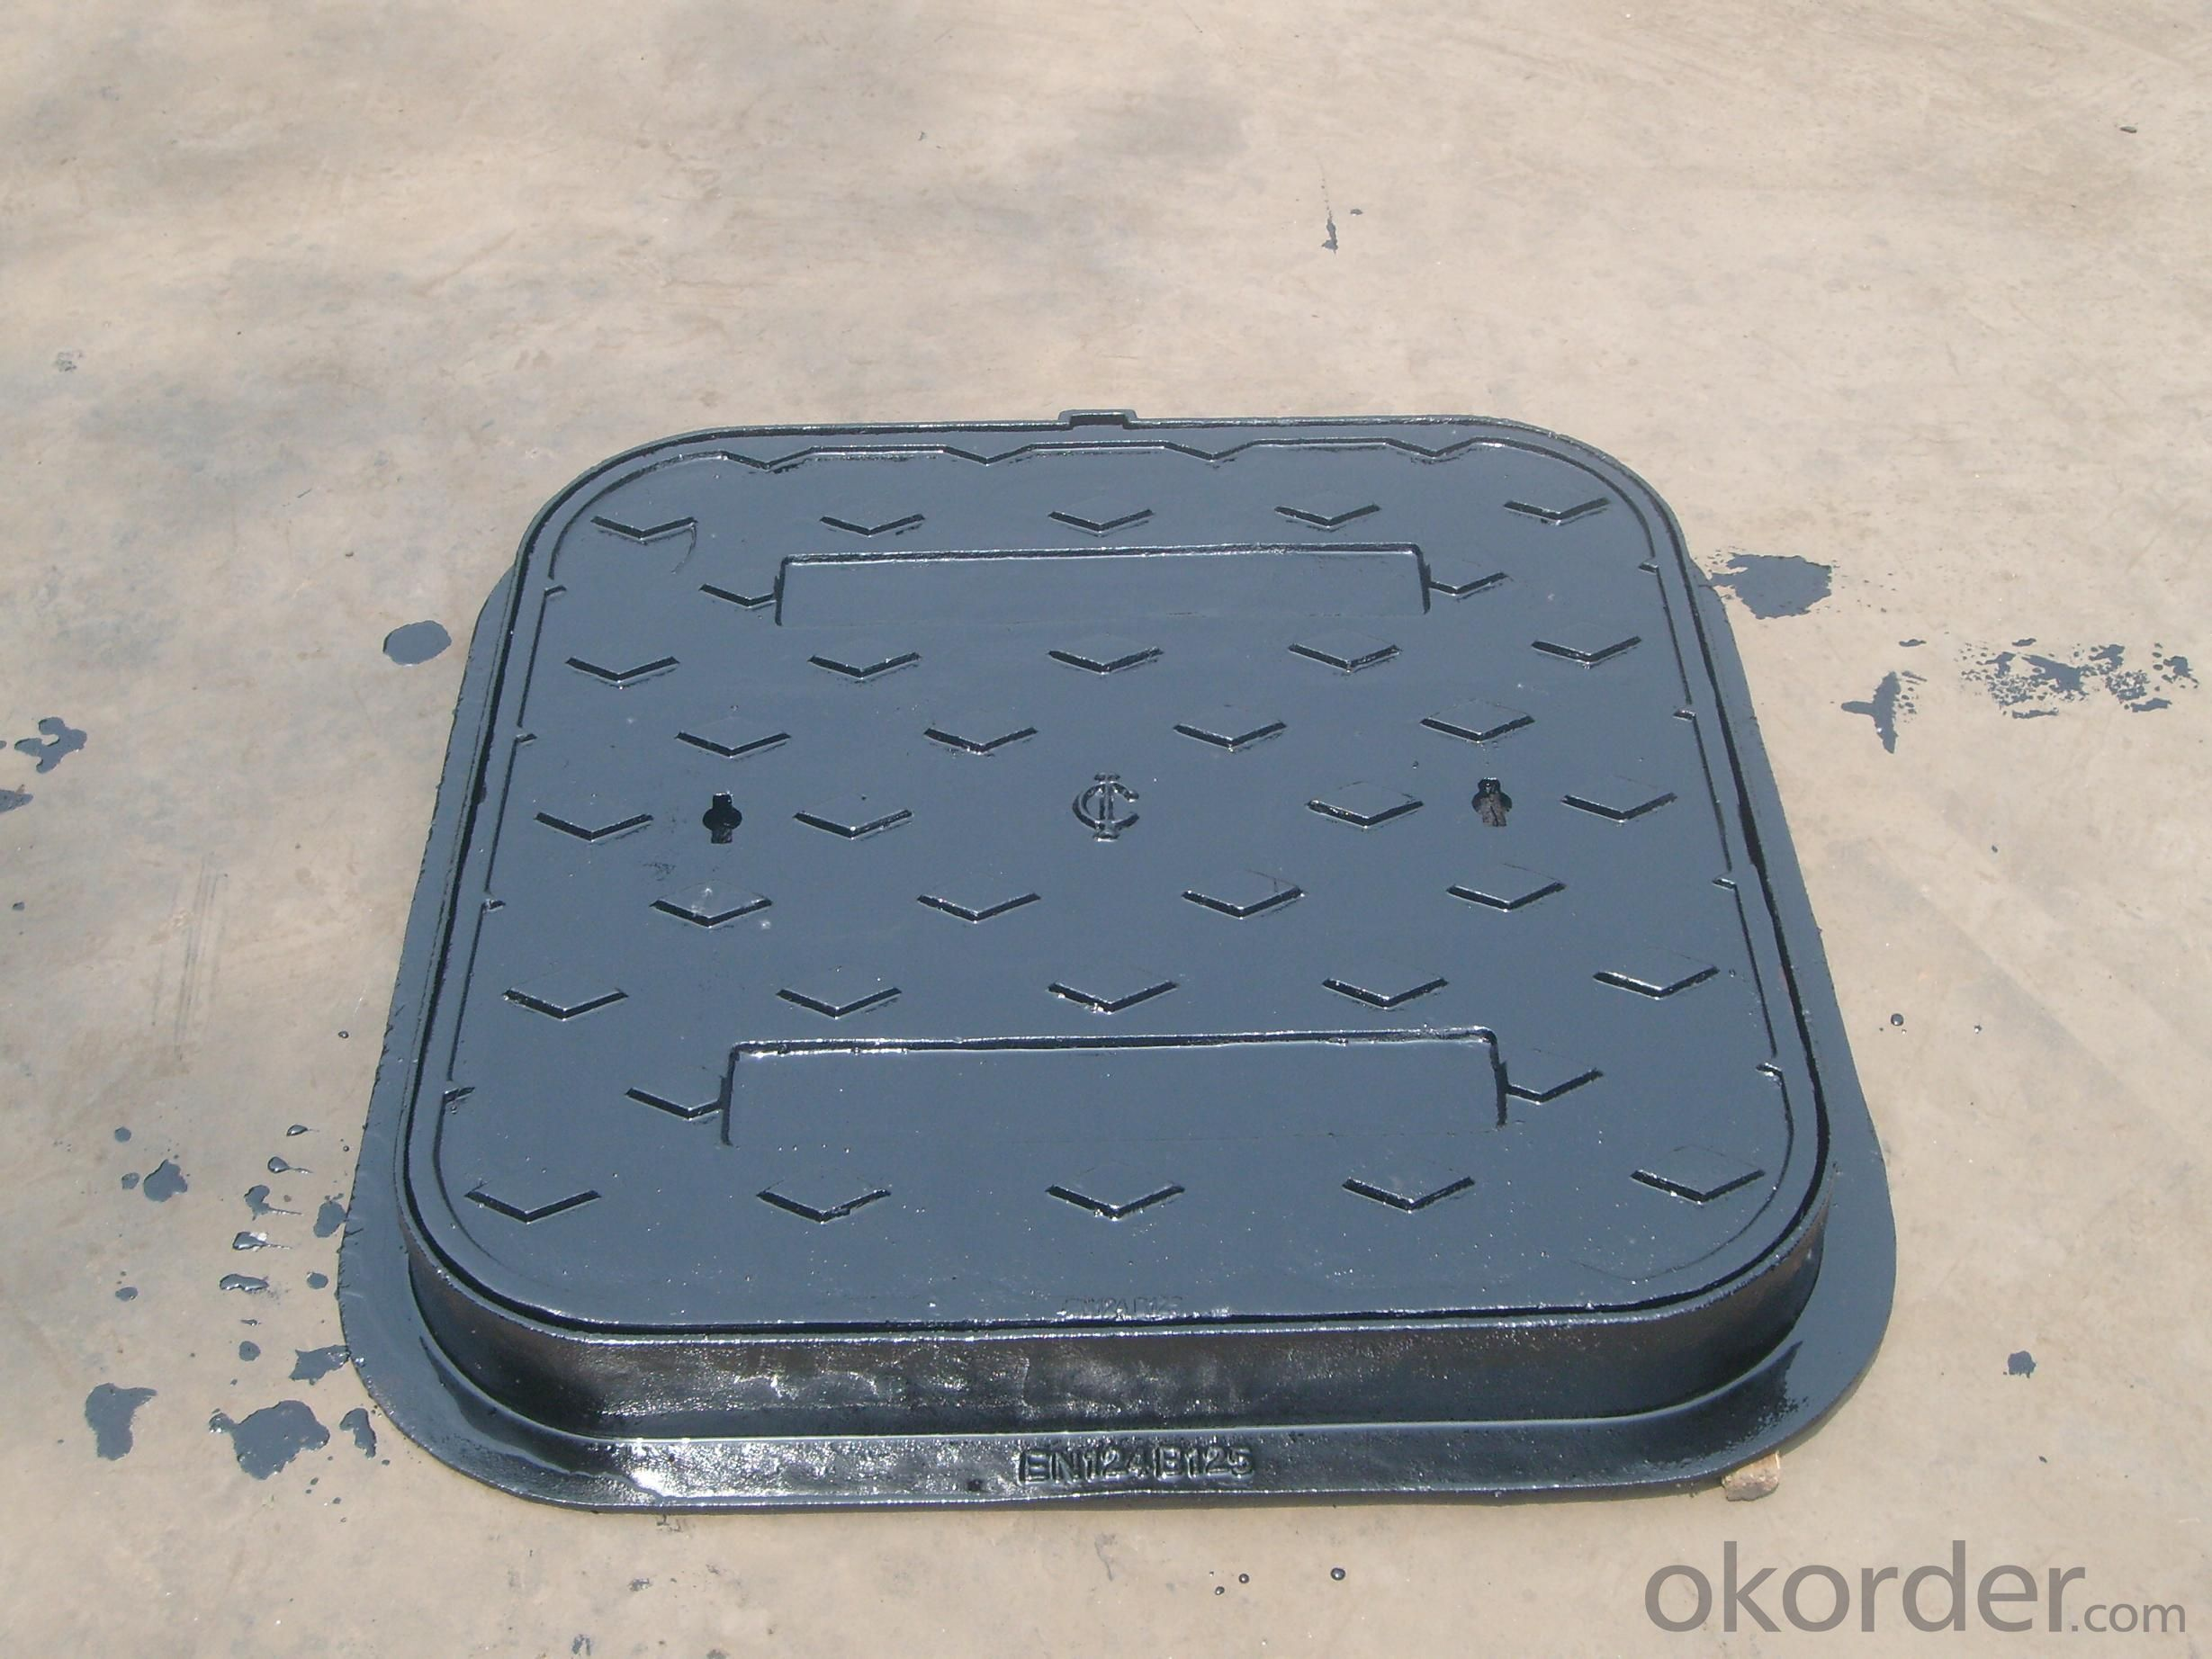 The heavy ductile manhole cover